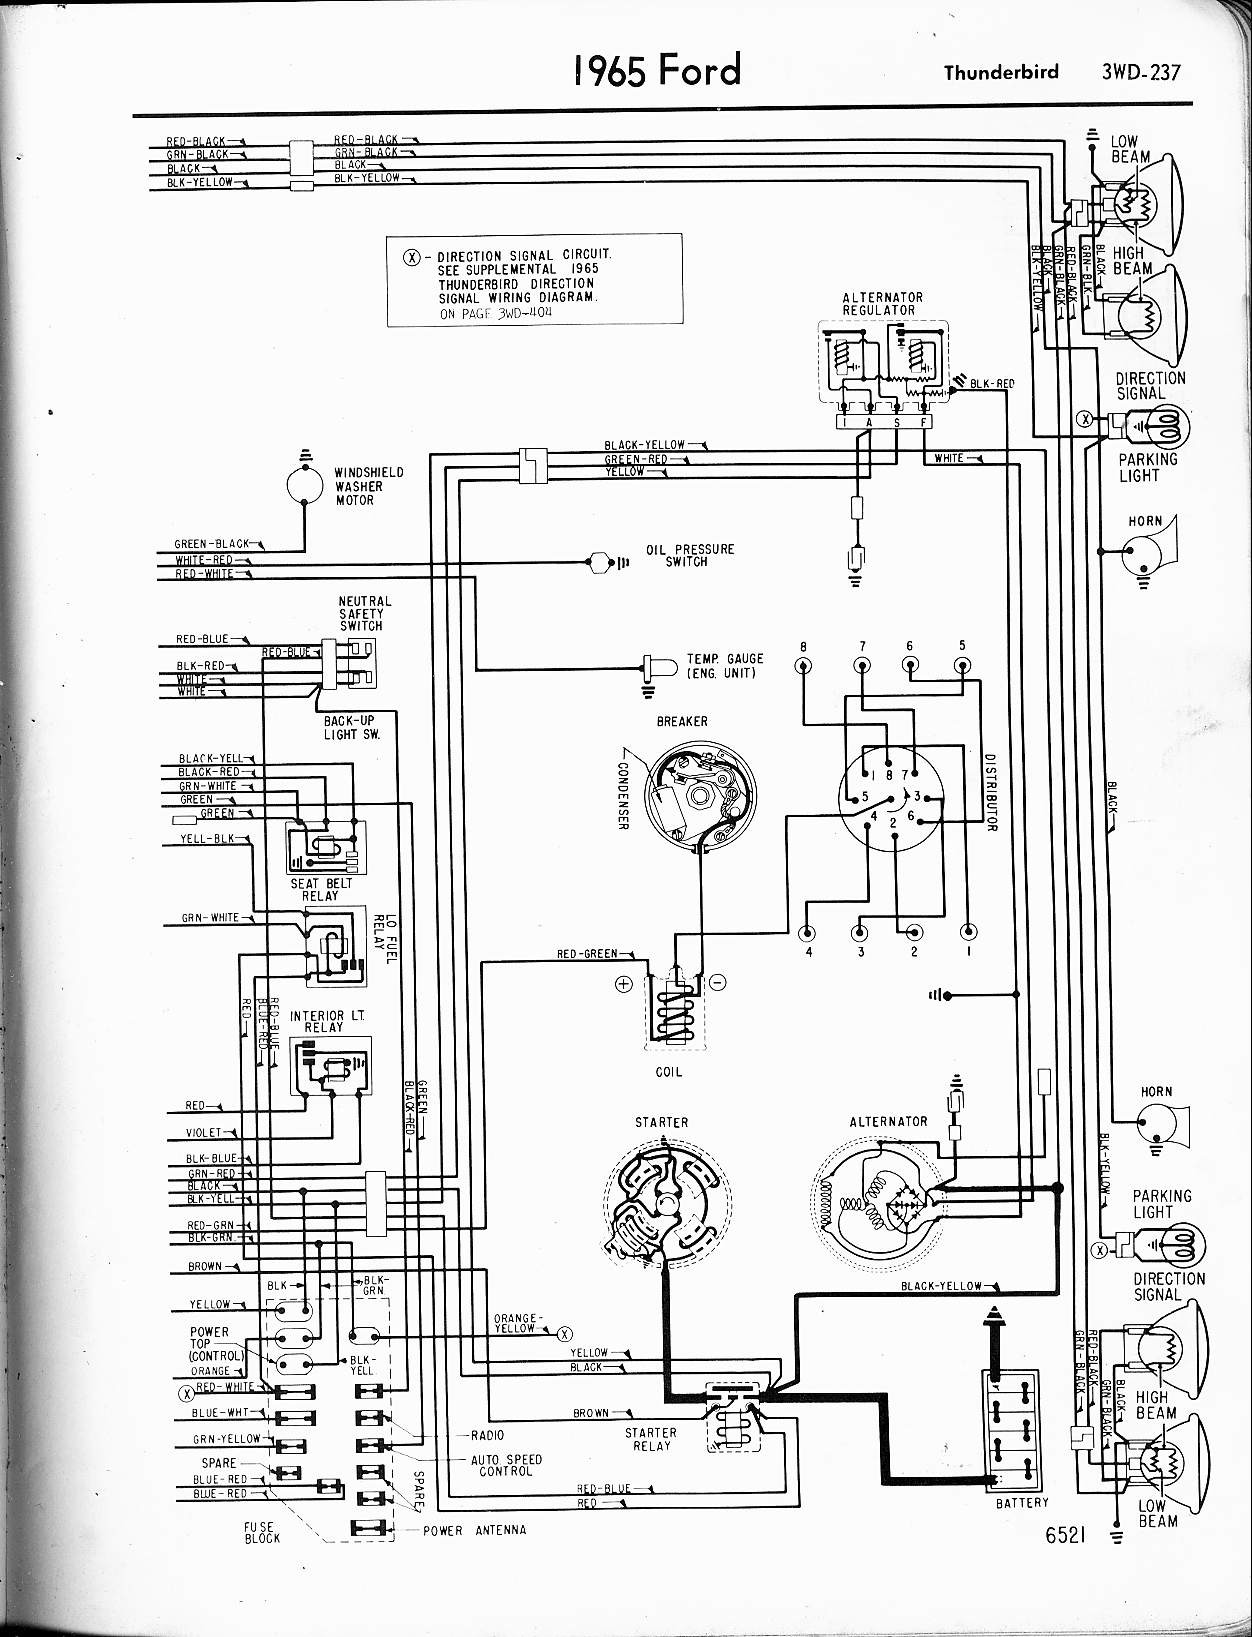 Ford Fusion Engine Diagram ford Econoline Wiring Diagram Also 1966 ford Thunderbird Wiring Of Ford Fusion Engine Diagram 77 ford F250 Wiring Diagram Wiring Info •